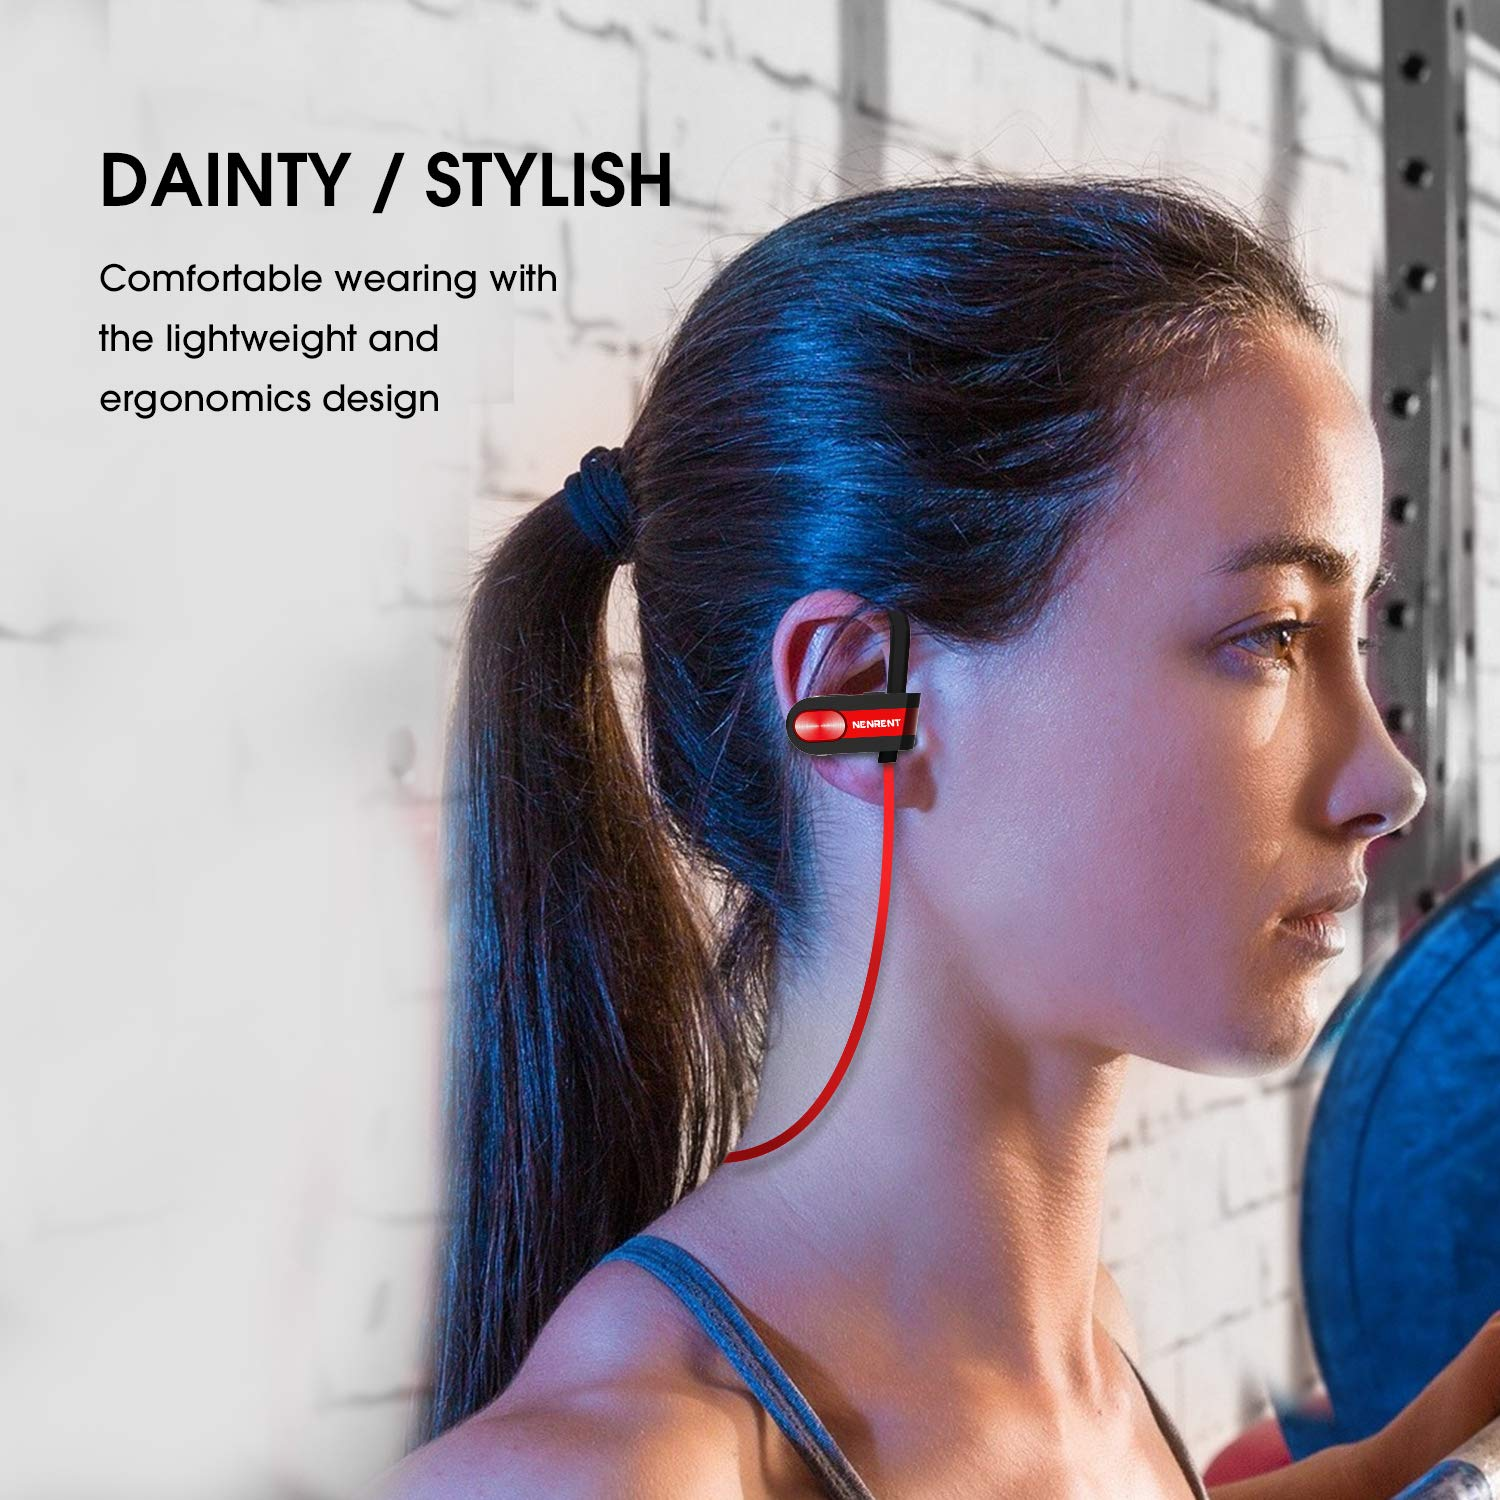 NENRENT Bluetooth Headphones, Q7 IPX7 Waterproof Sports Wireless Earbuds w/Mic, Noise Canceling Headsets HD Stereo in Ear Earphones Exercise 8 Hour Battery